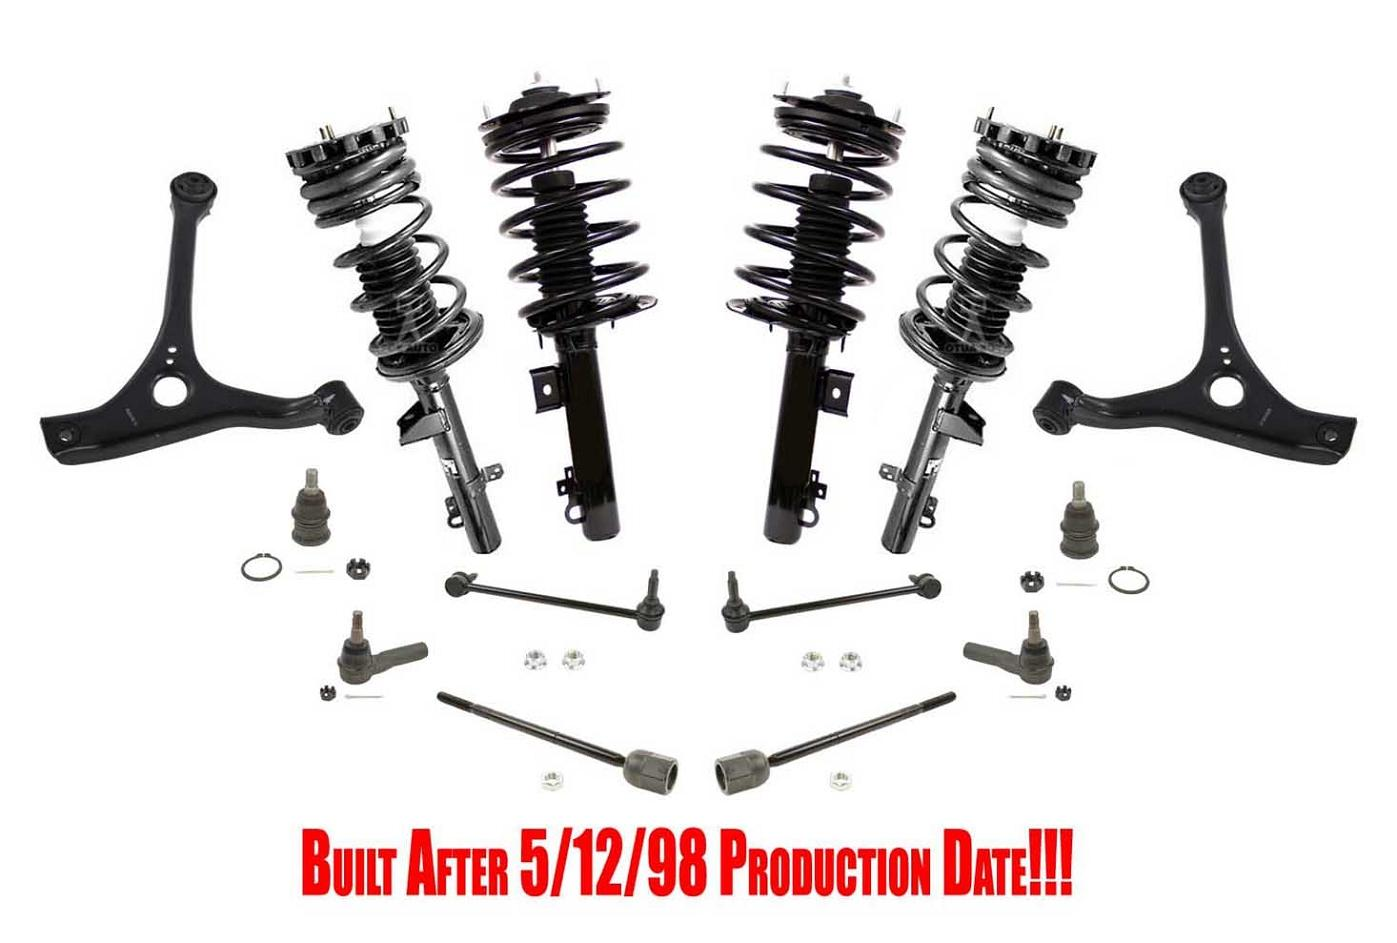 New 16pc Suspension Amp Chassis Kit For Ford Taurus 98 06